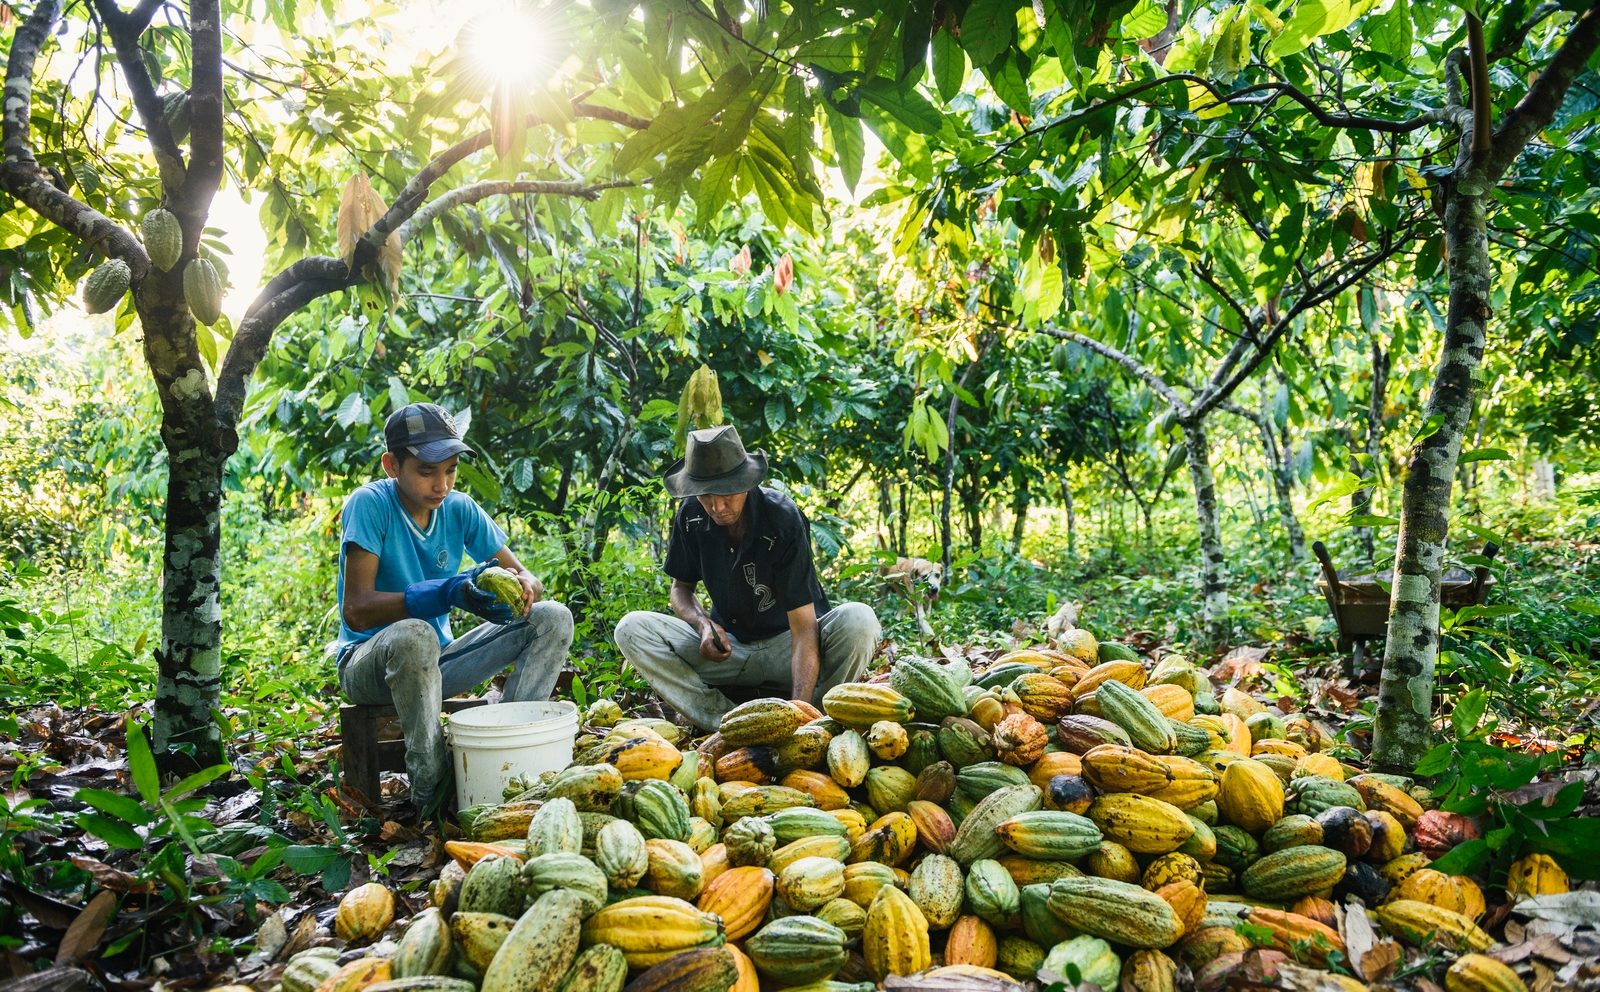 father and son process a pile of cacao seeds while sitting under the shade of a tree in Brazil